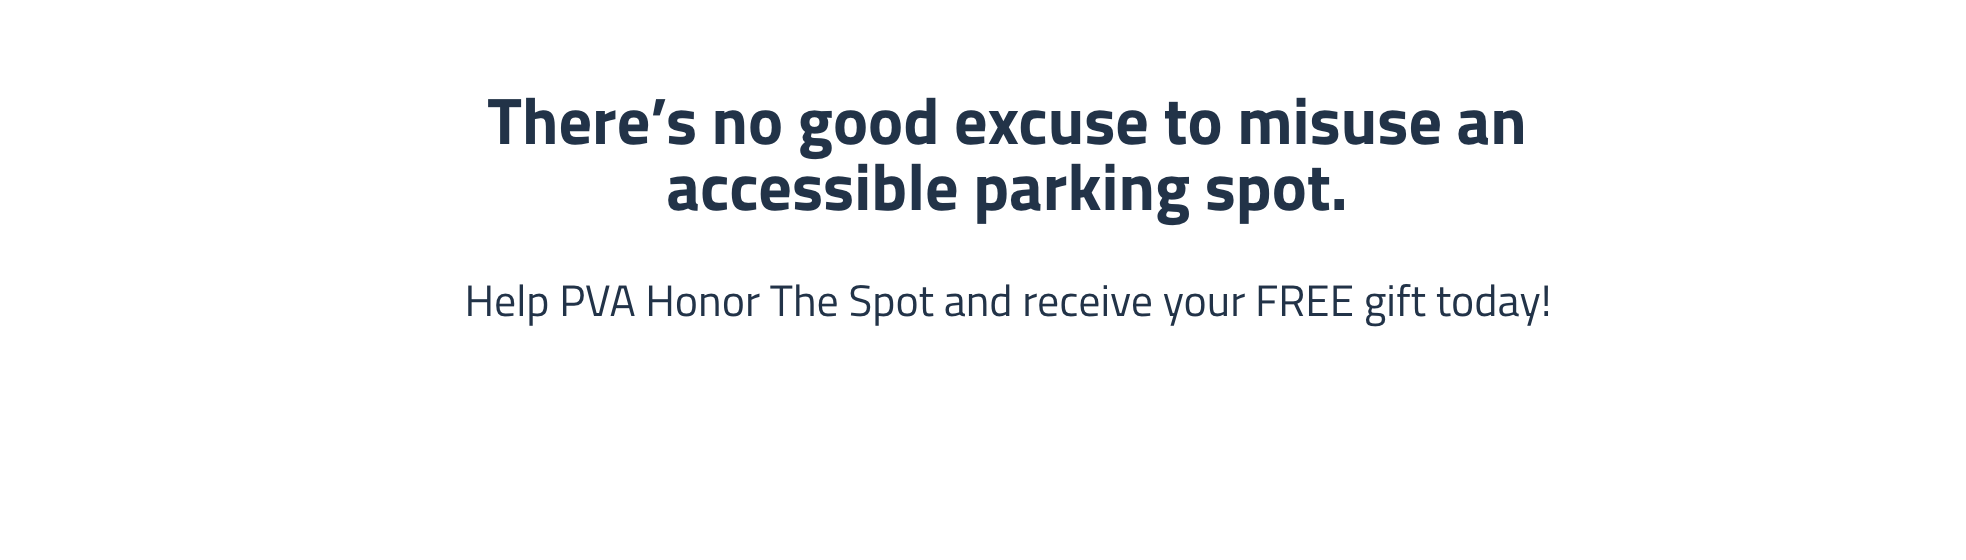 There's no good excuse to misuse the accessible parking spot.